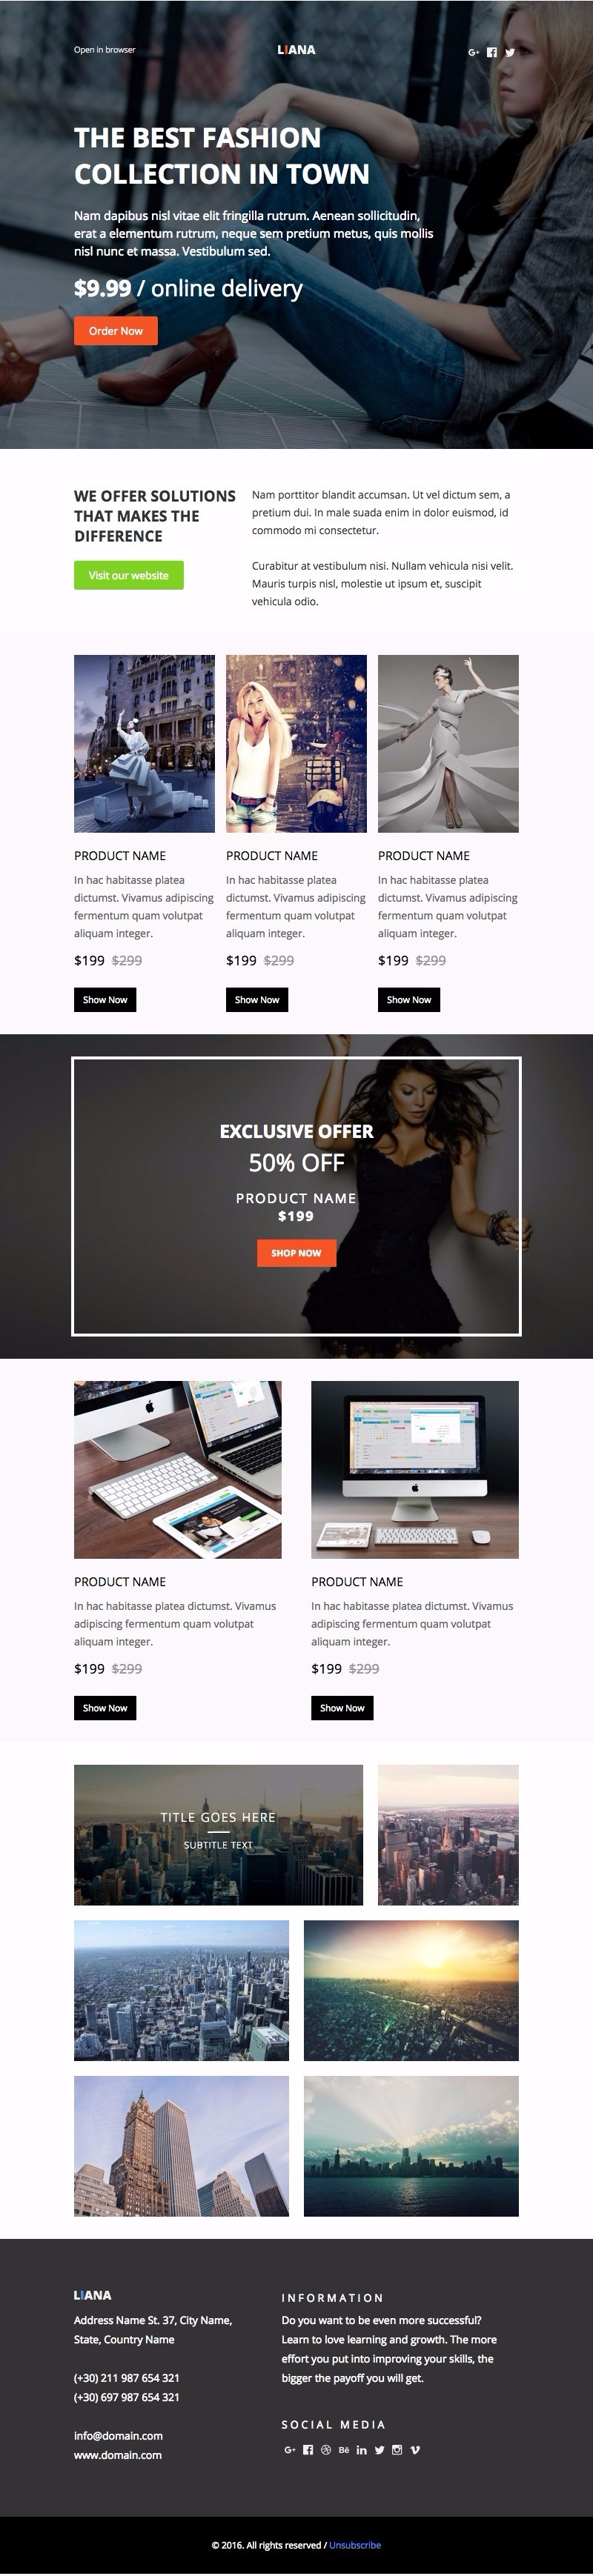 Responsive Liana E-mail template for promoting your eshop, products ...